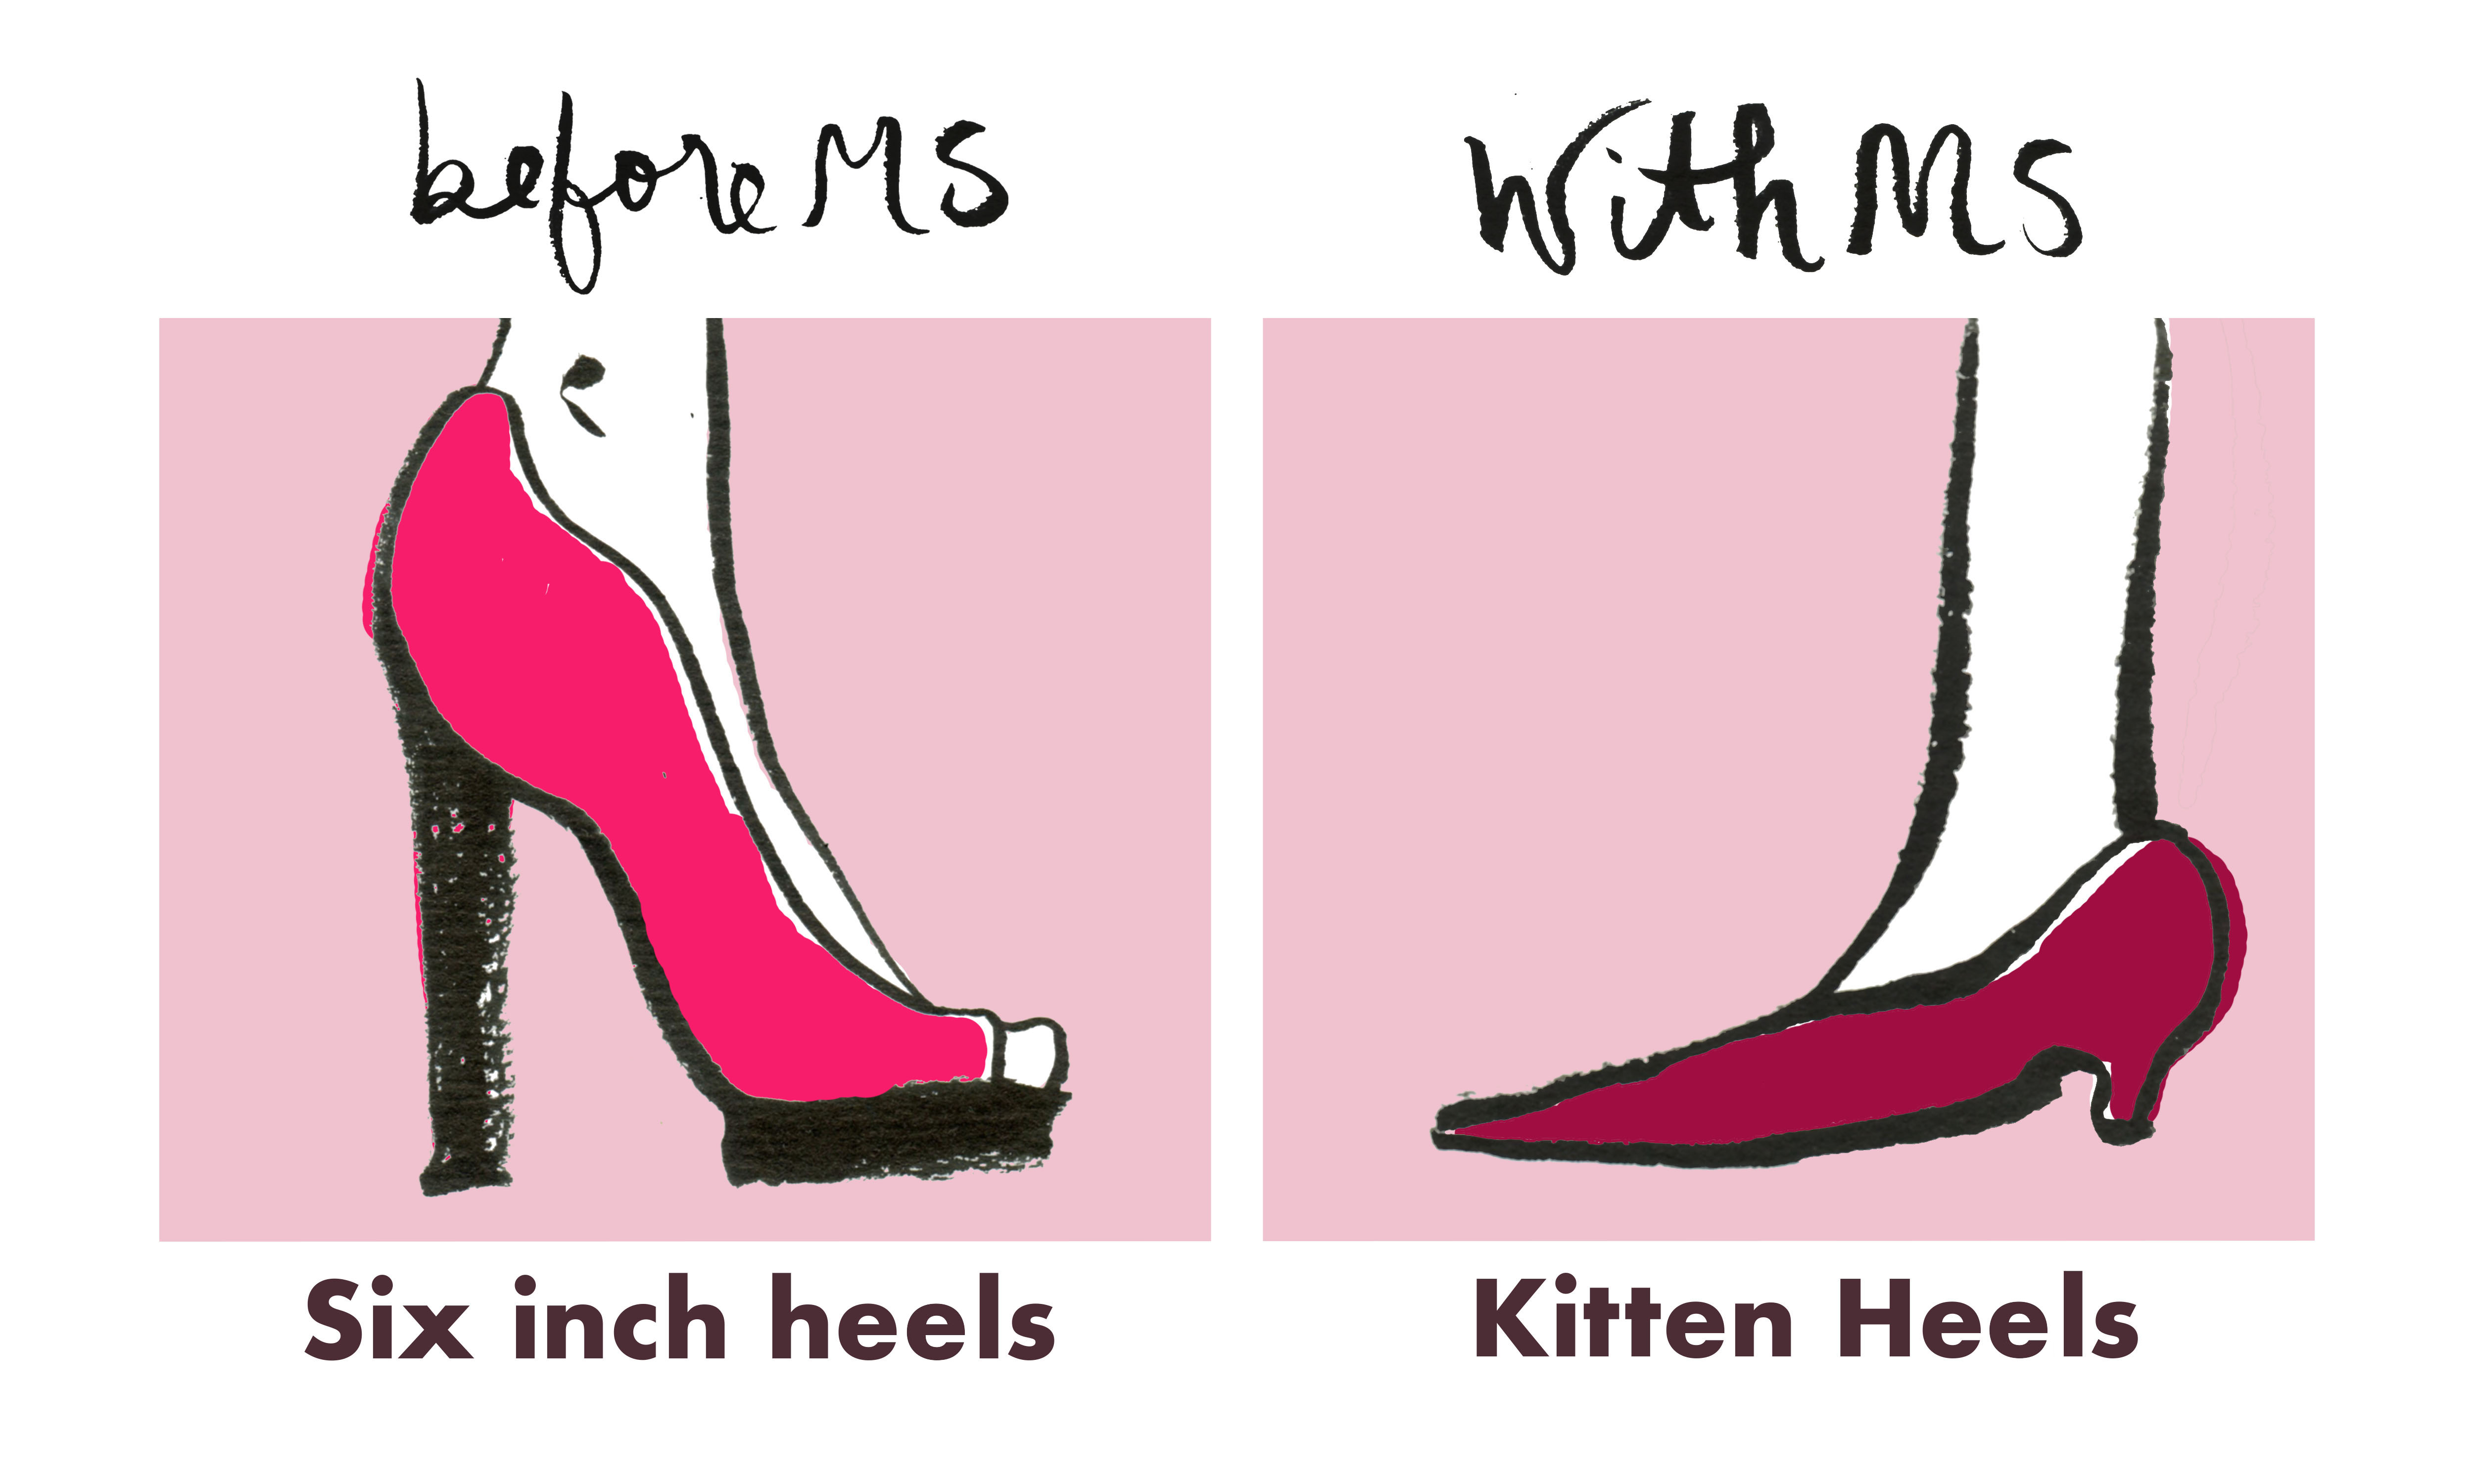 Footwear: Before MS and After Comic 2